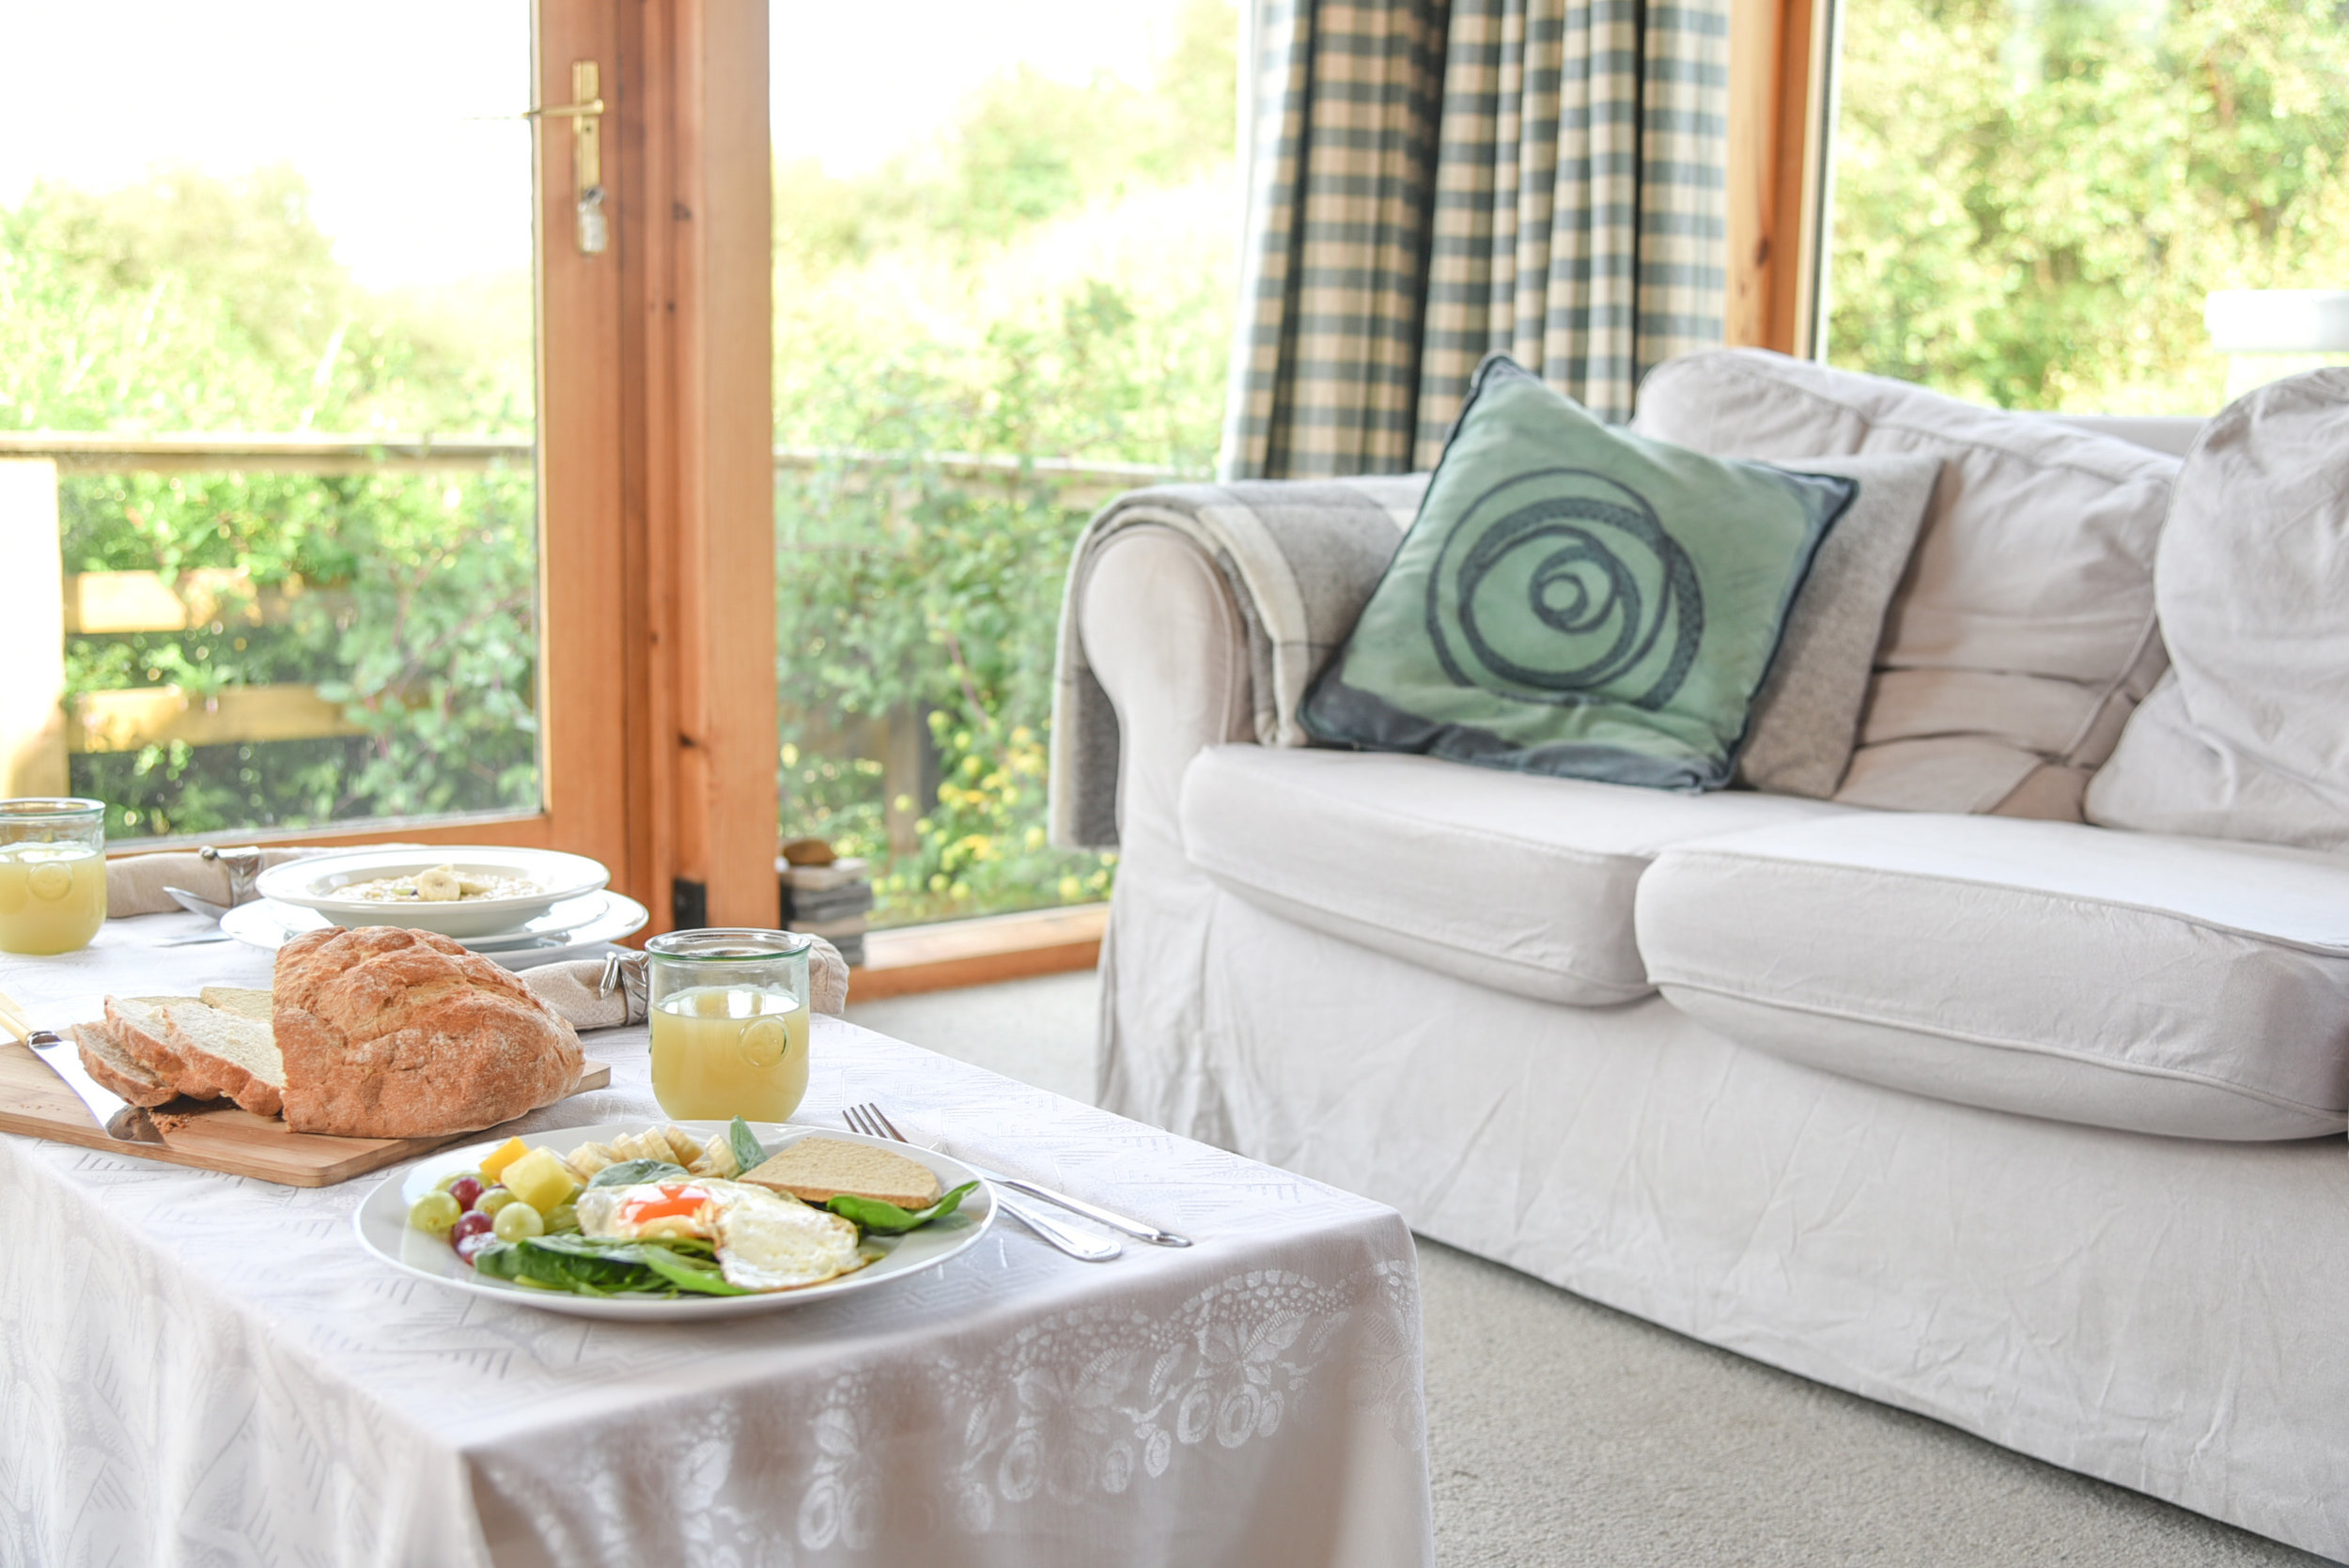 Breakfast in garden room at Osag na Mara B&B.jpg